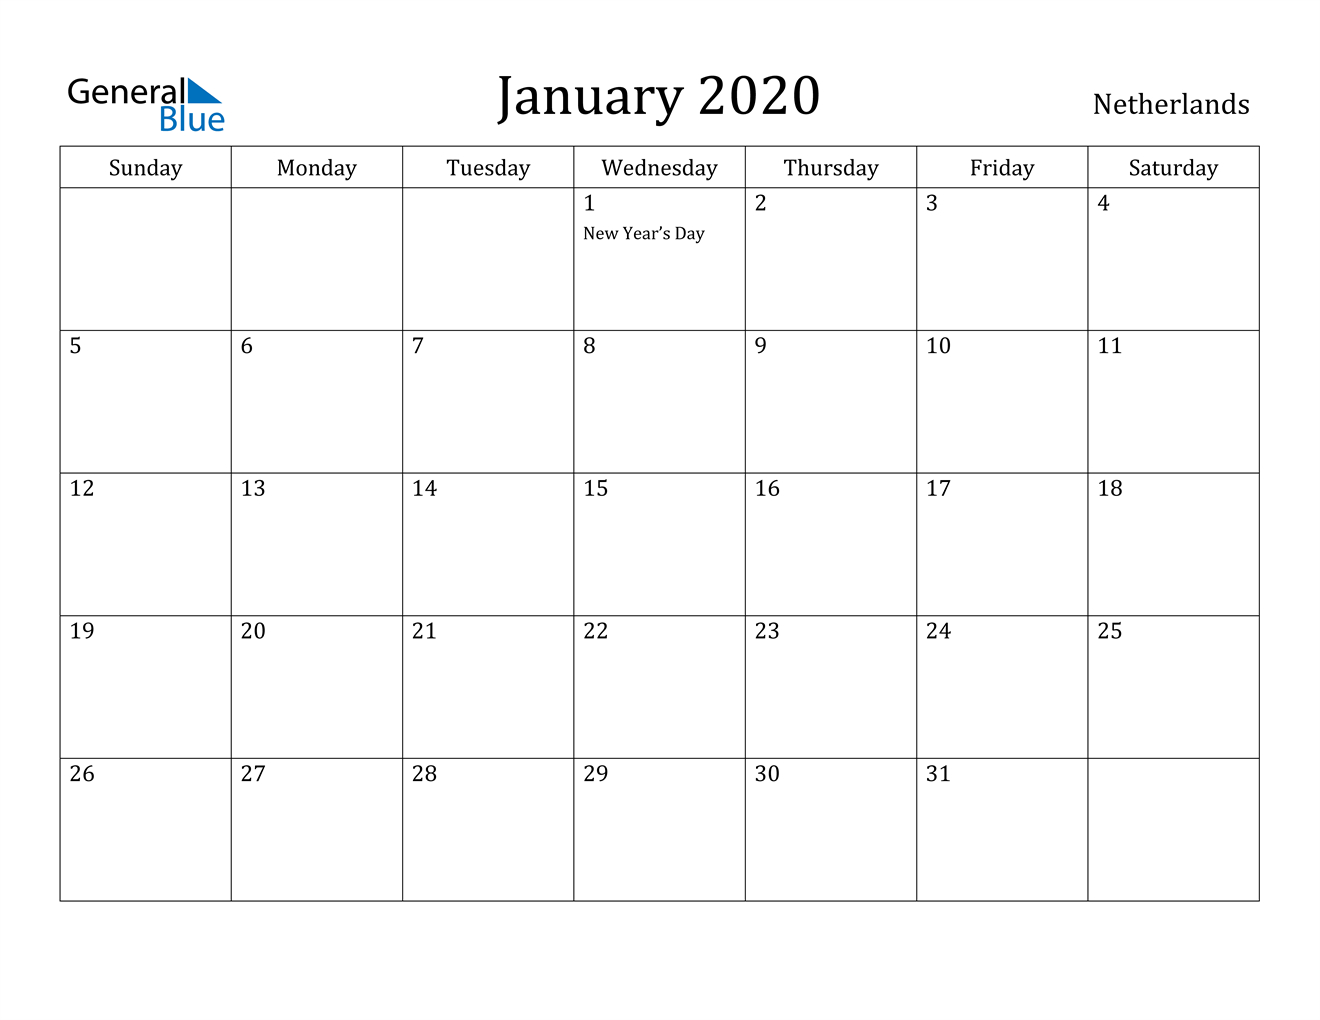 January 2020 Calendar - Netherlands within Calendar 2020 Nl